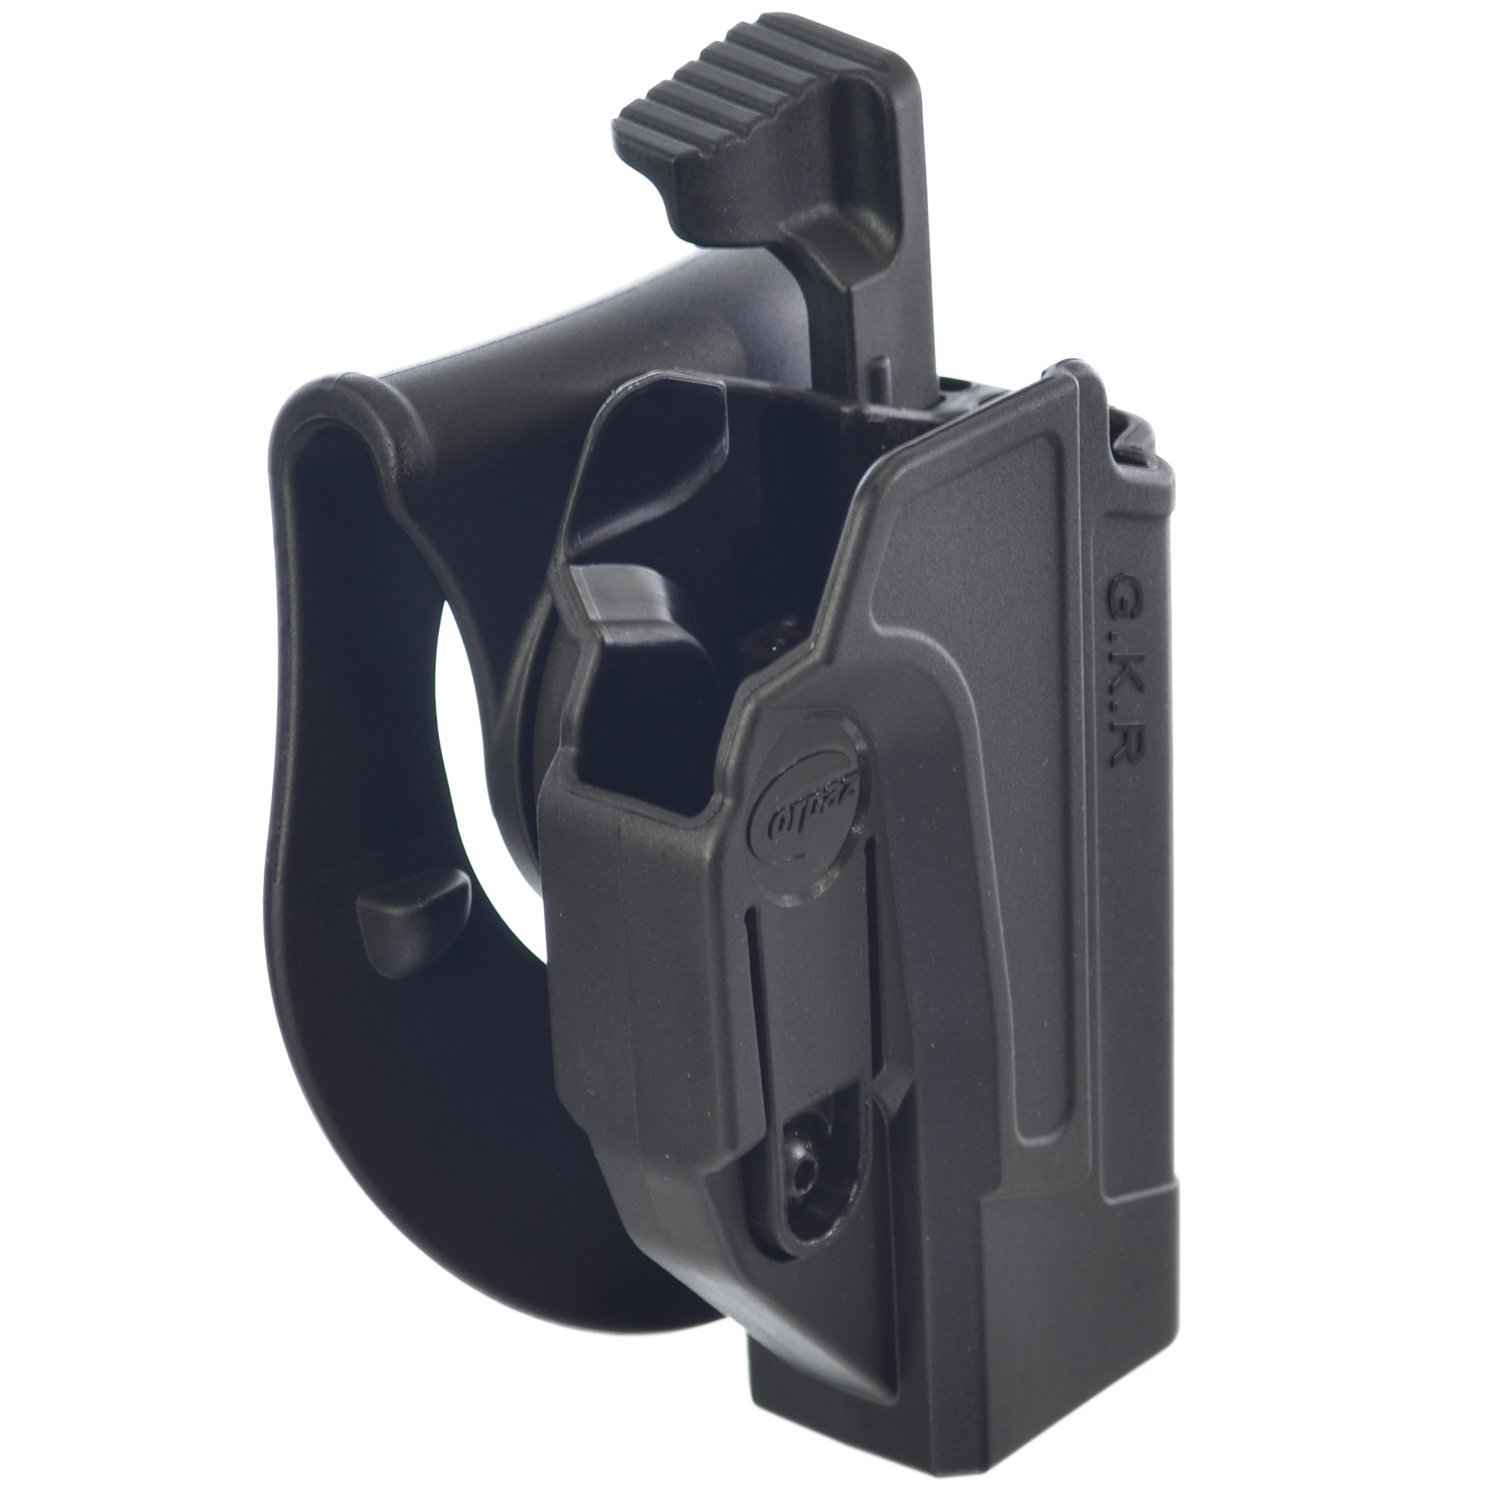 Orpaz Glock Thumb Release Holster